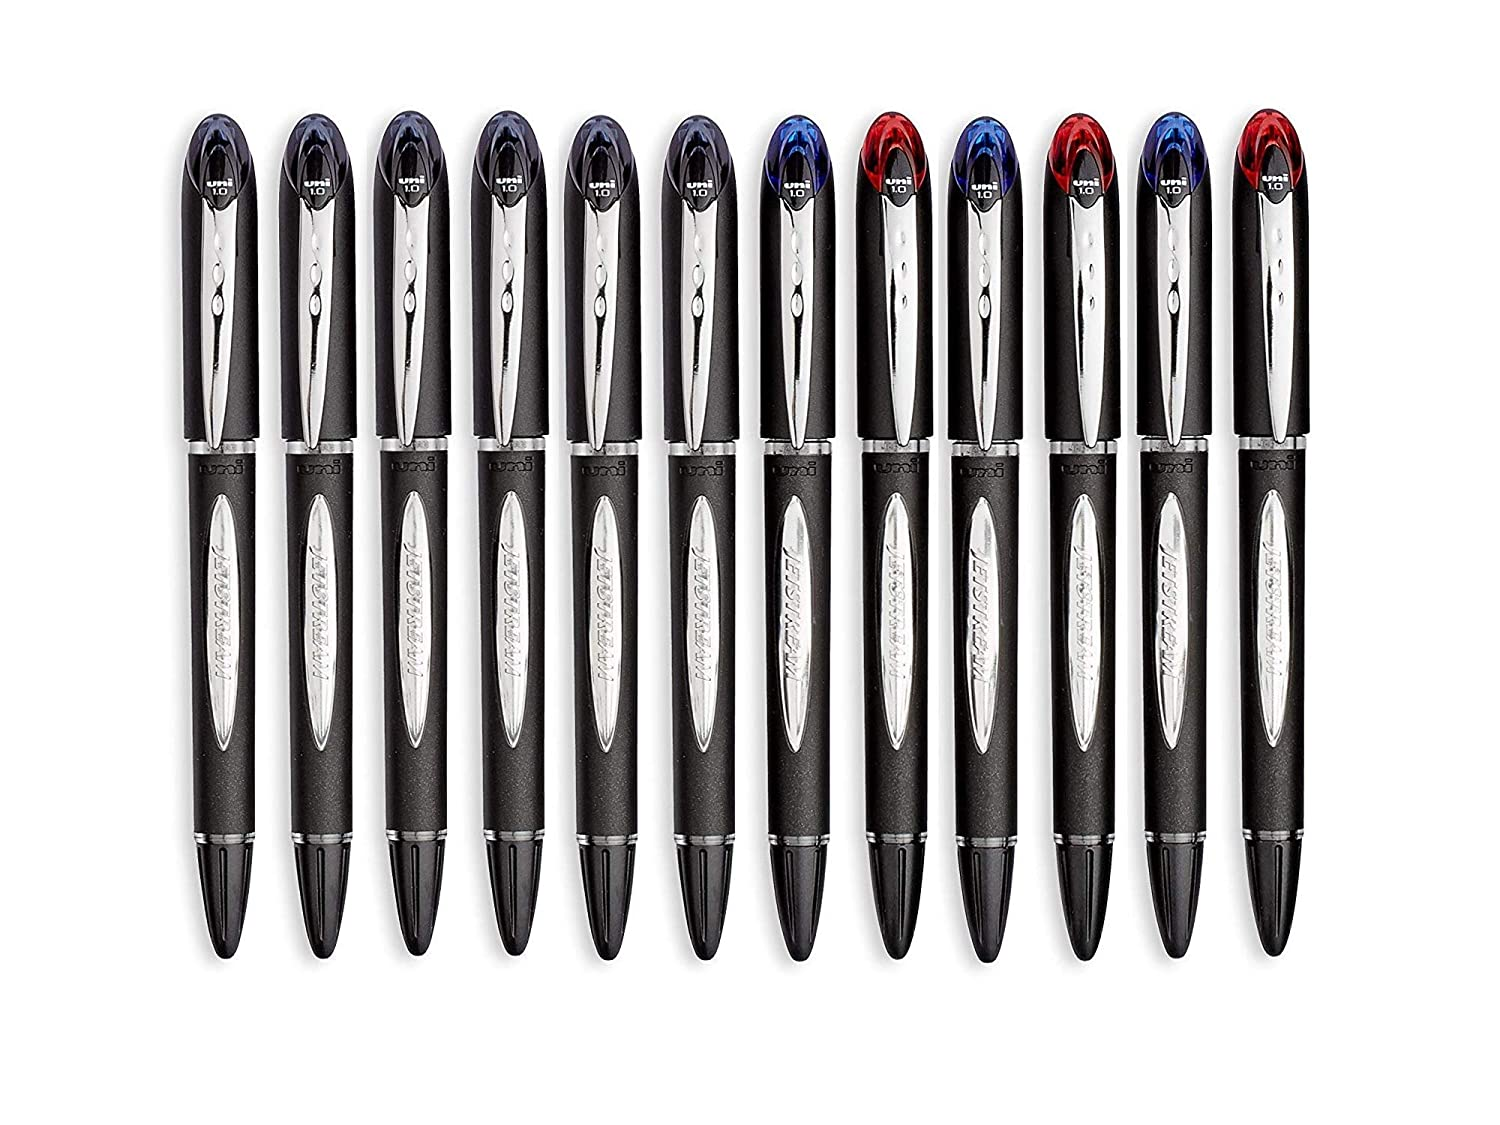 uni-Ball Jetstream Ballpoint Pens, Bold Point (1 0mm), 8 Black + 4 Assorted  Colors Pack